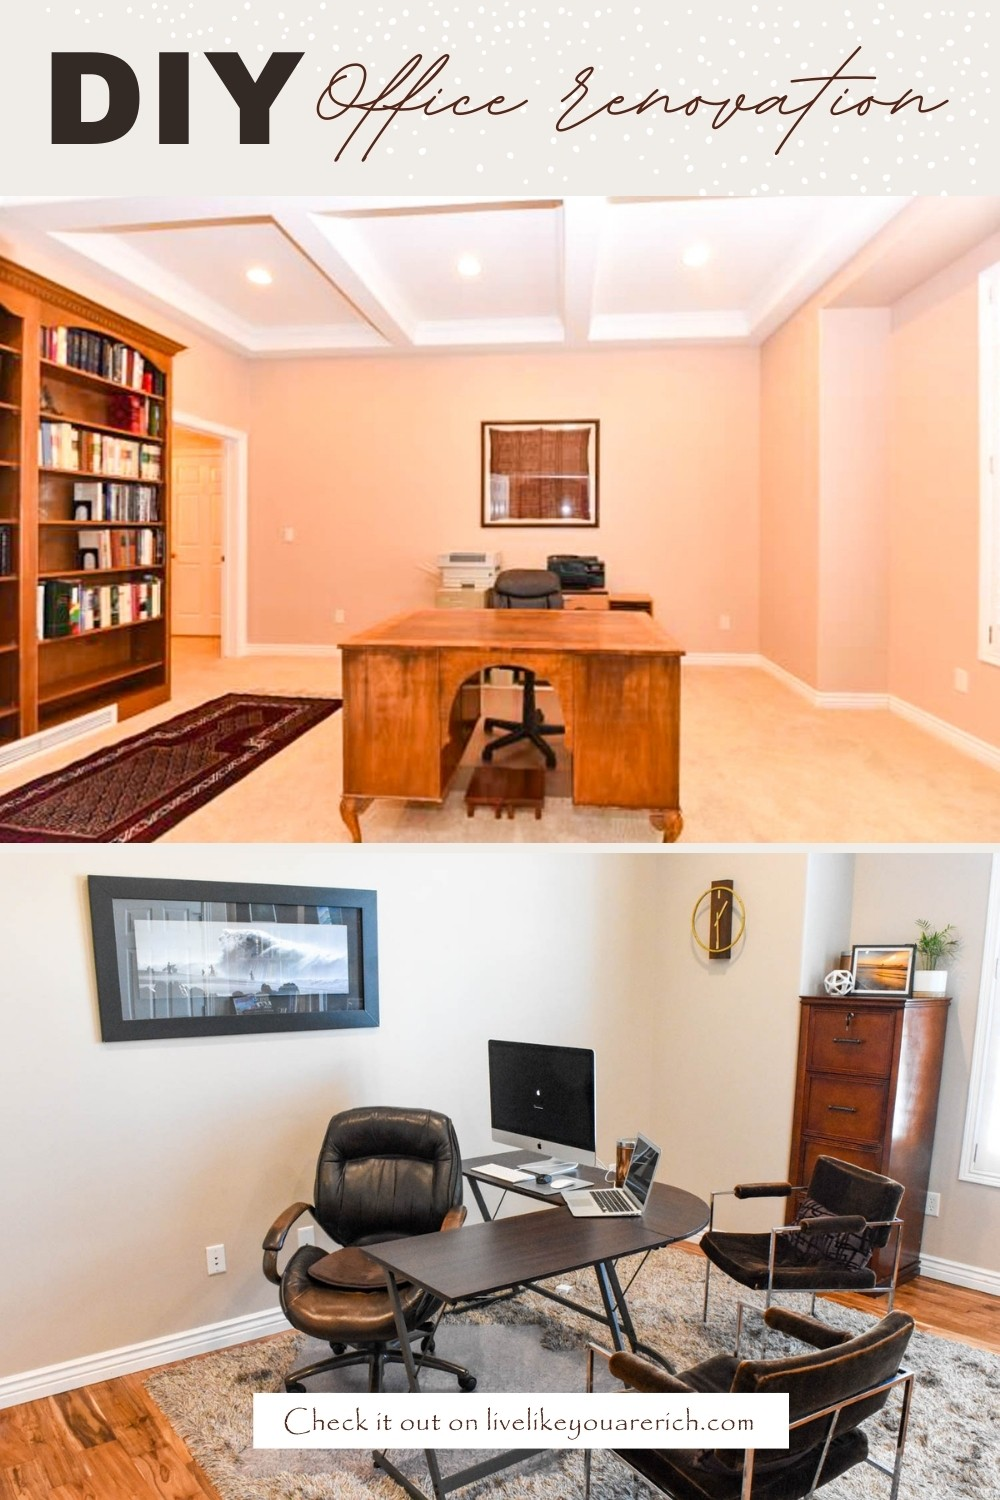 The DIY office renovation before and after photos for my house 3. You can renovate your office for much less than the estimated $150-$300 a square foot! We did ours for $13.33 a square foot!! Check the blog to see how we saved over $19,400 on this DIY office Renovation!